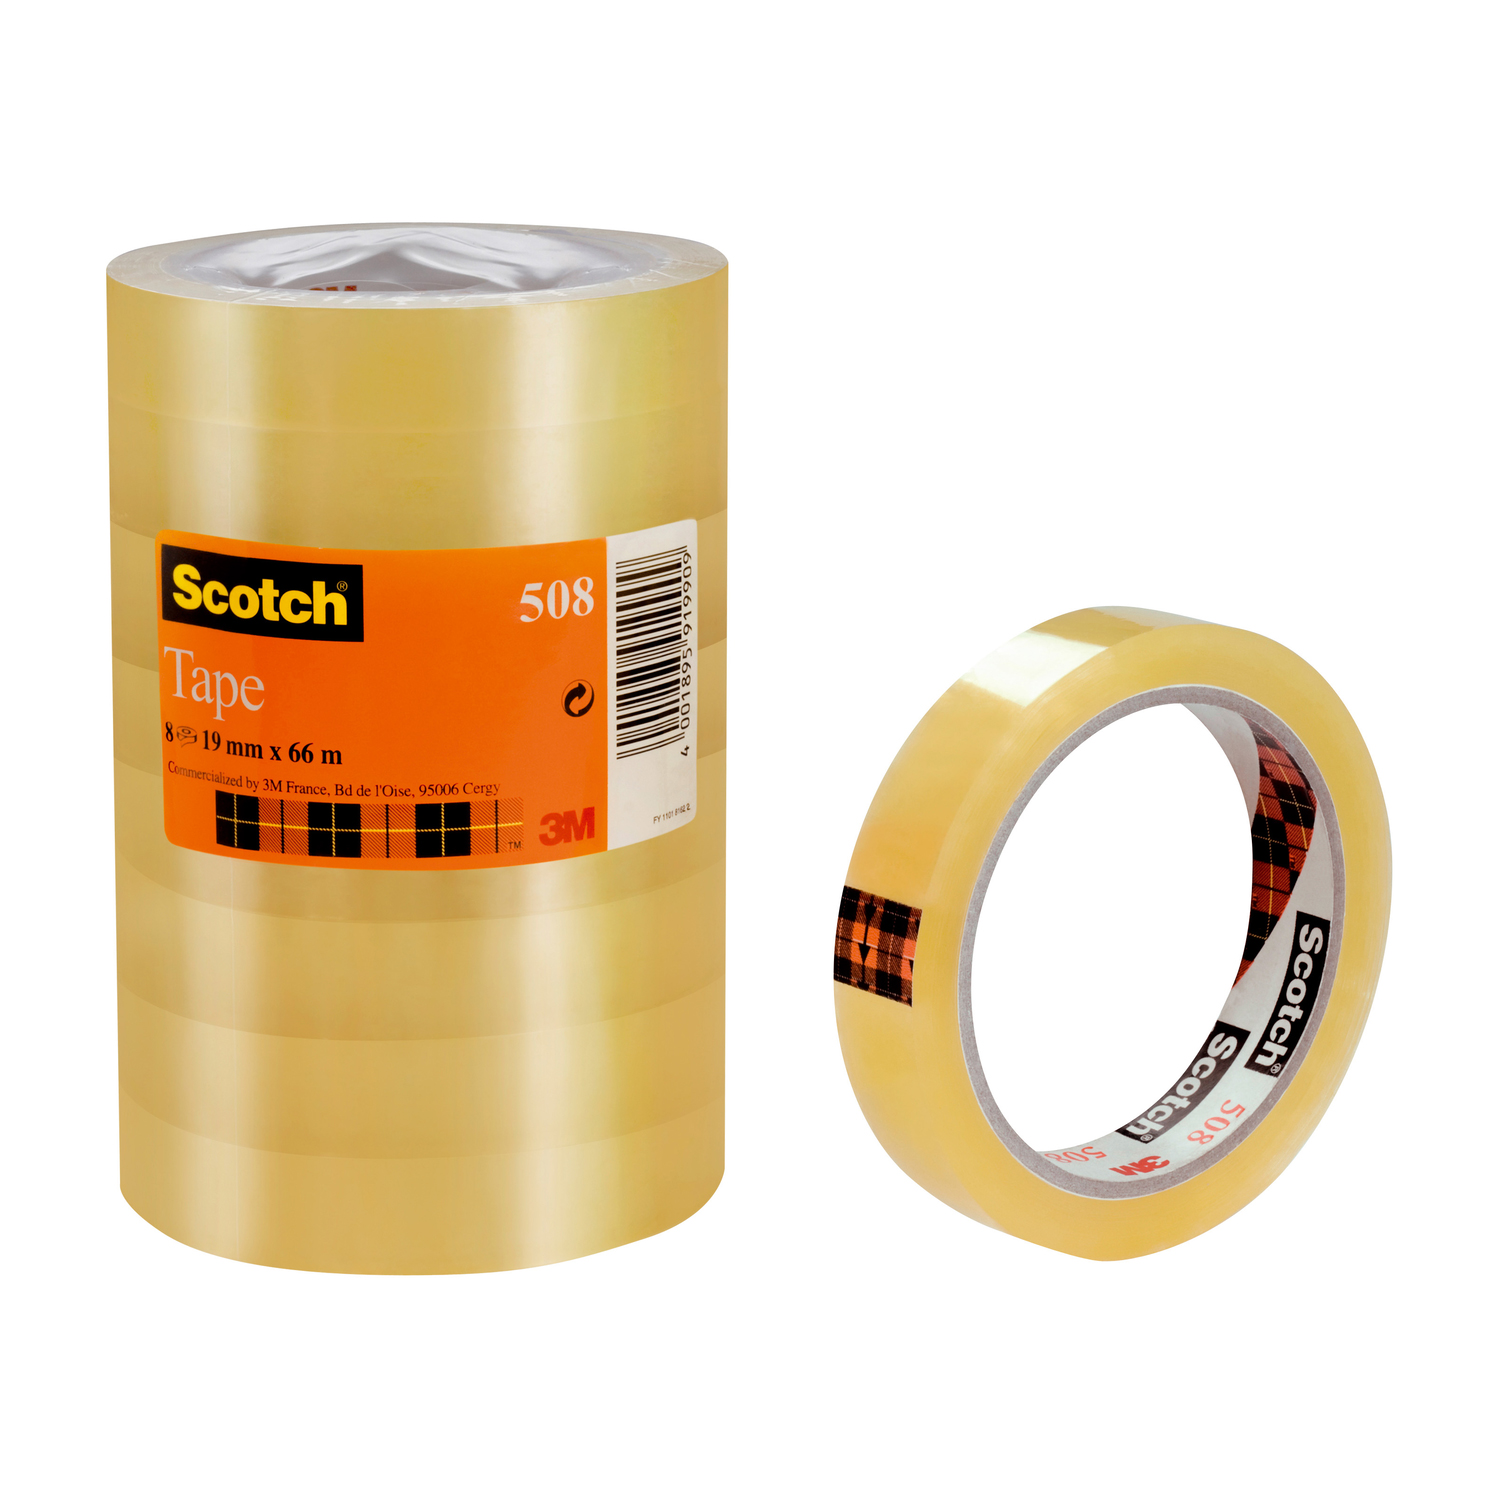 Transparent tape Scotch 508 Clear Tape 19mmx66m Clear Ref 7000080794 [Pack 8]